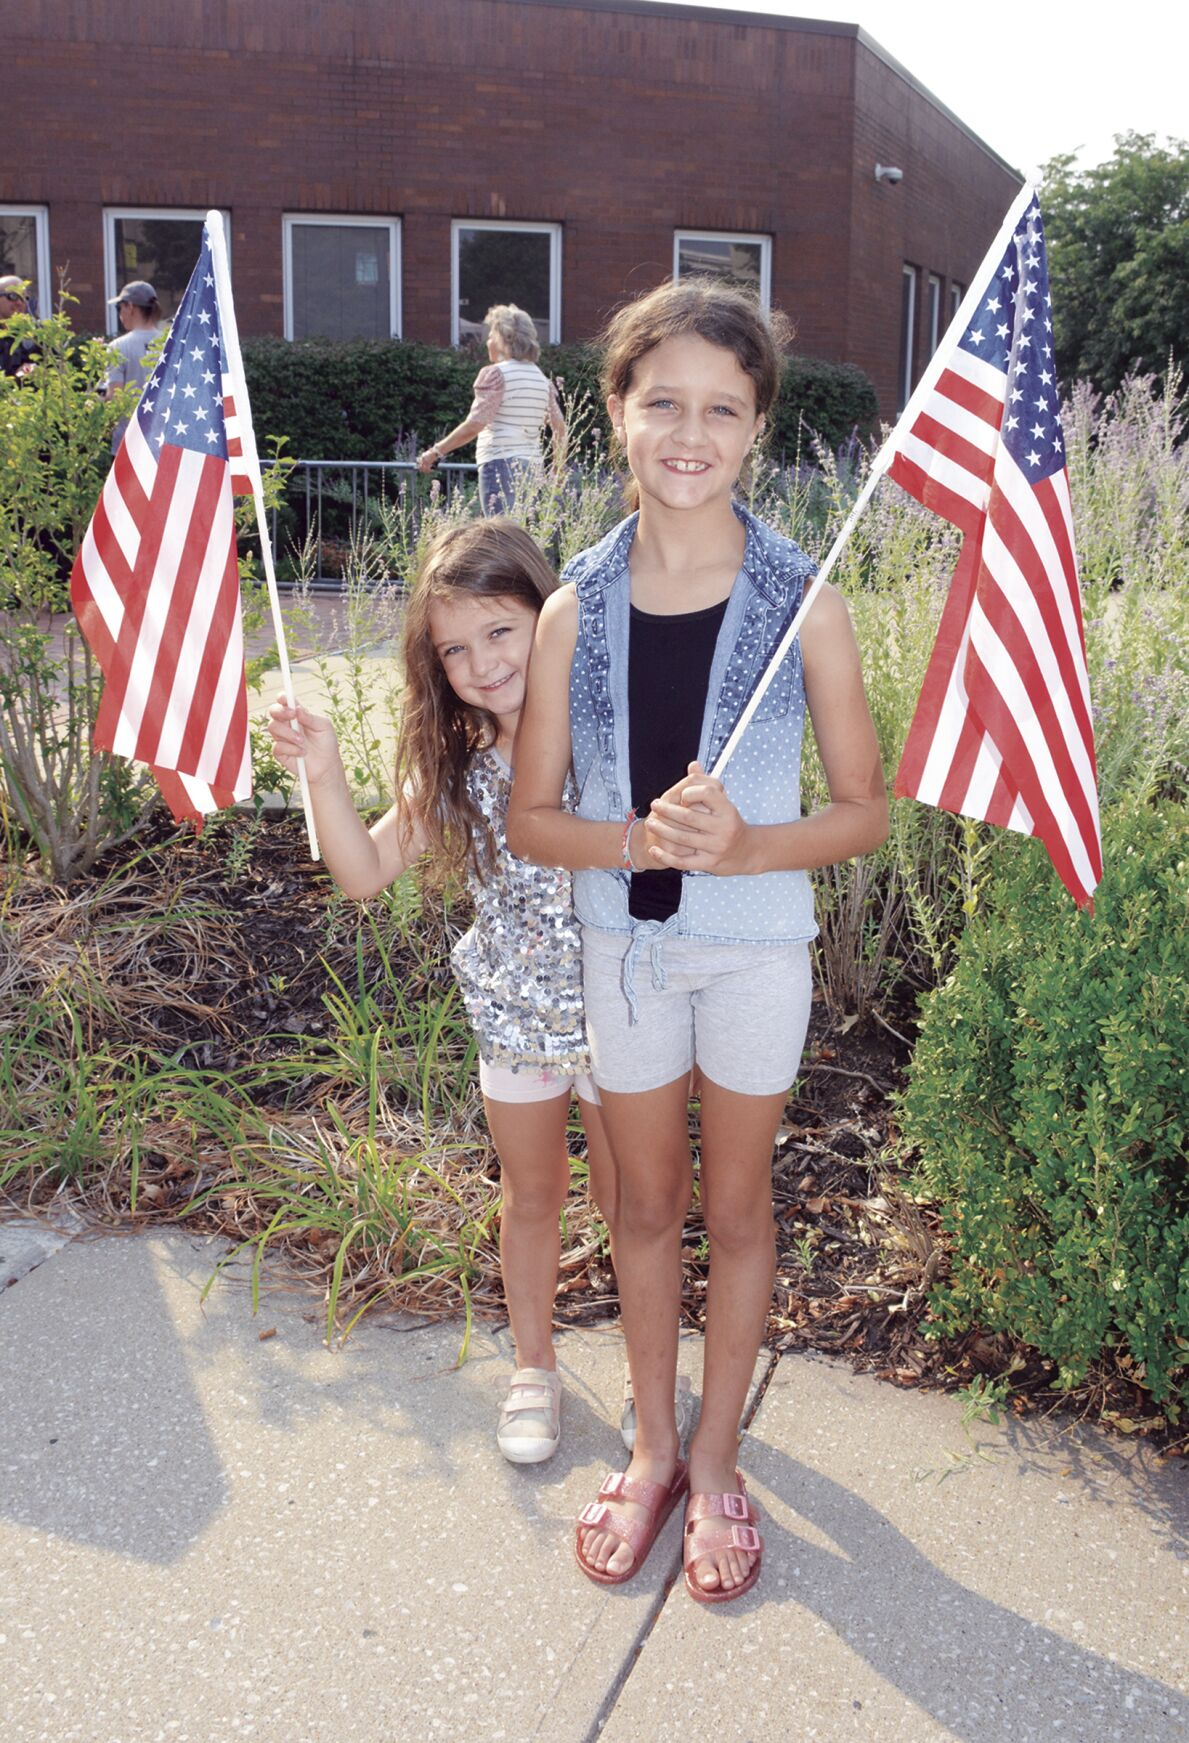 Liberty, Clay County unite to honor Sept. 11